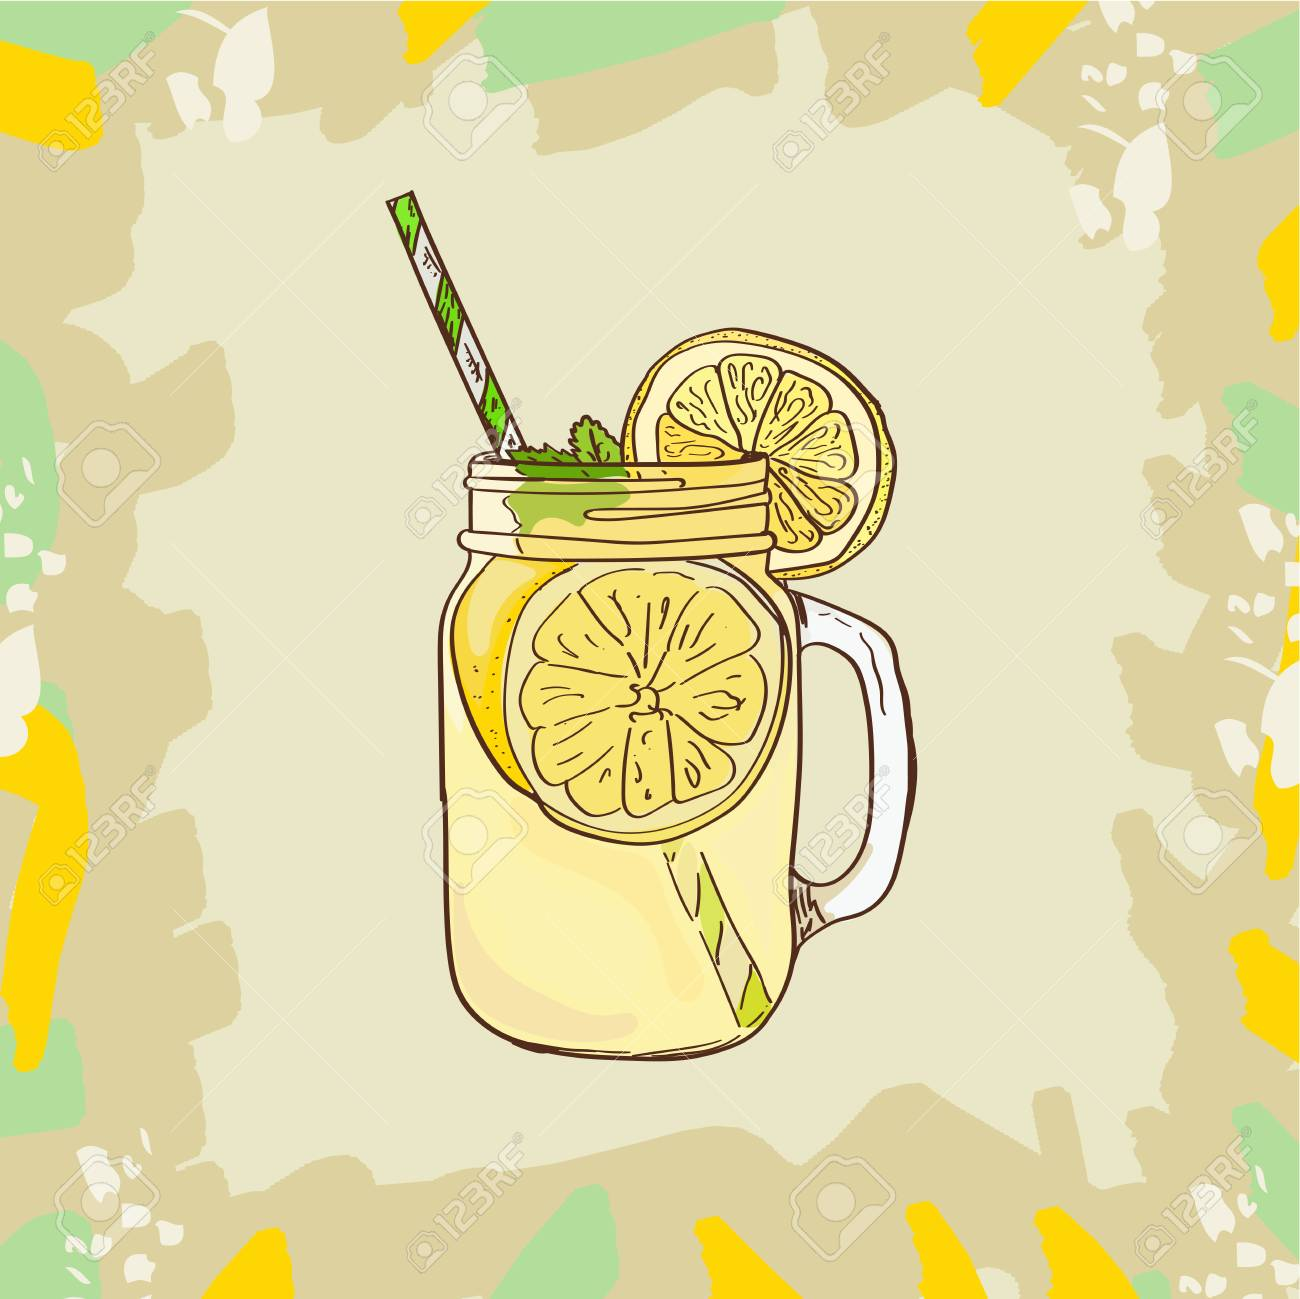 Lemonade in mason jar mug with drinking straw and lemon wedge.